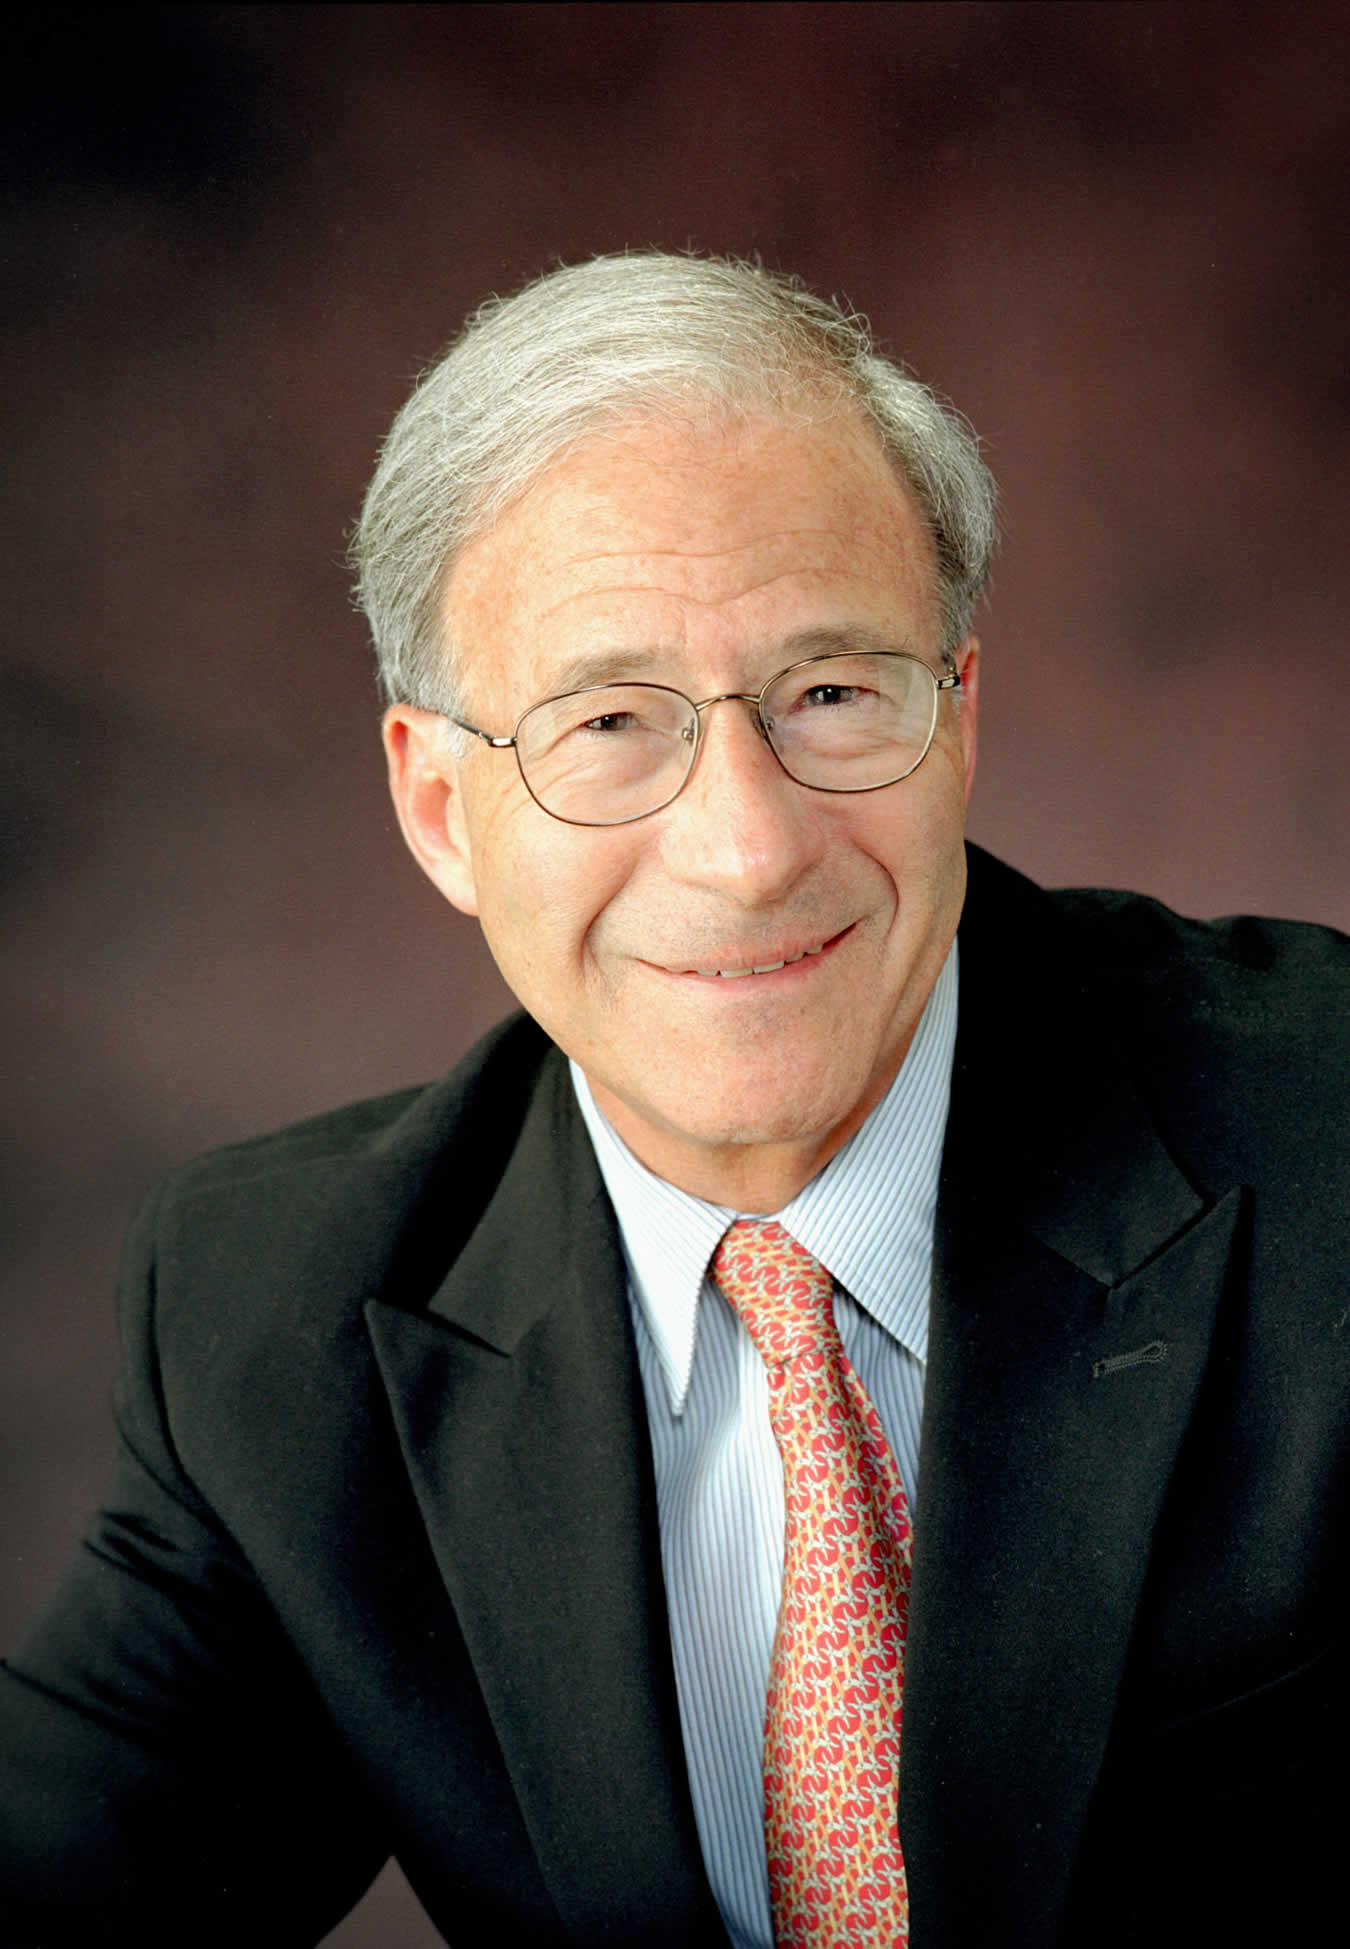 Professor David J. Kupfer.